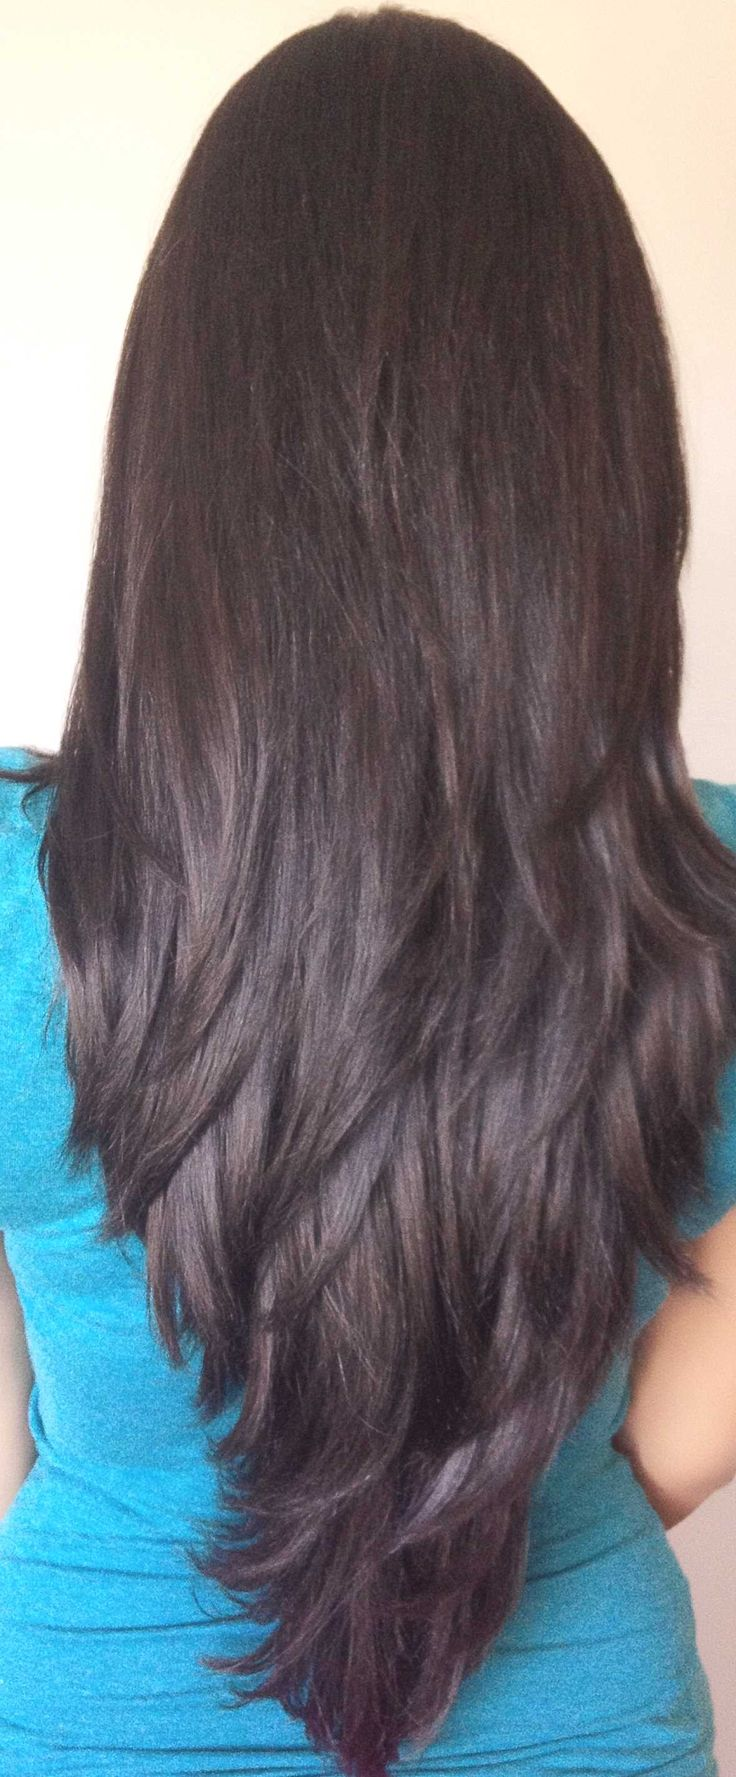 step cut hairstyle for long hair - http://www.gohairstyles.net/step-cut-hairstyle-for-long-hair/